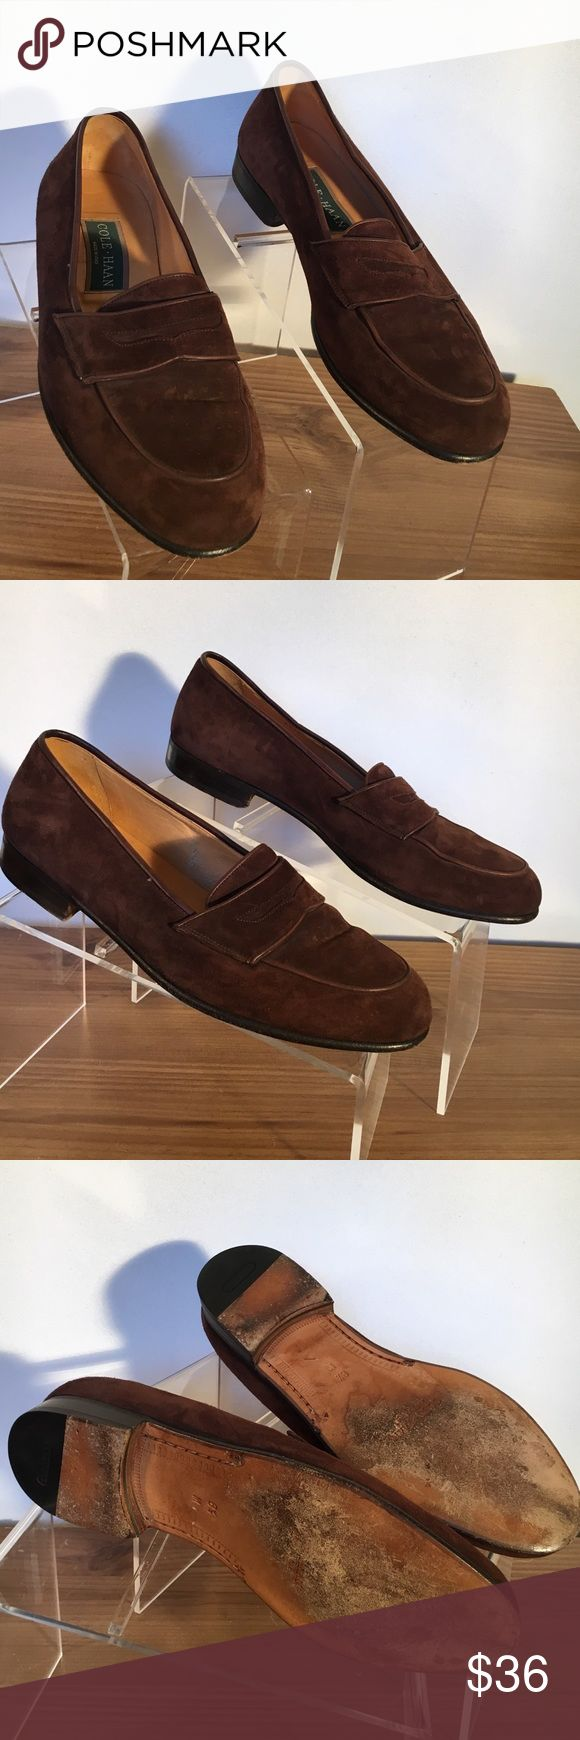 Cole Haan brown suede loafers Cole Haan brown suede loafers made in Italy. Excellent condition some wear on heel Cole Haan Shoes Loafers & Slip-Ons